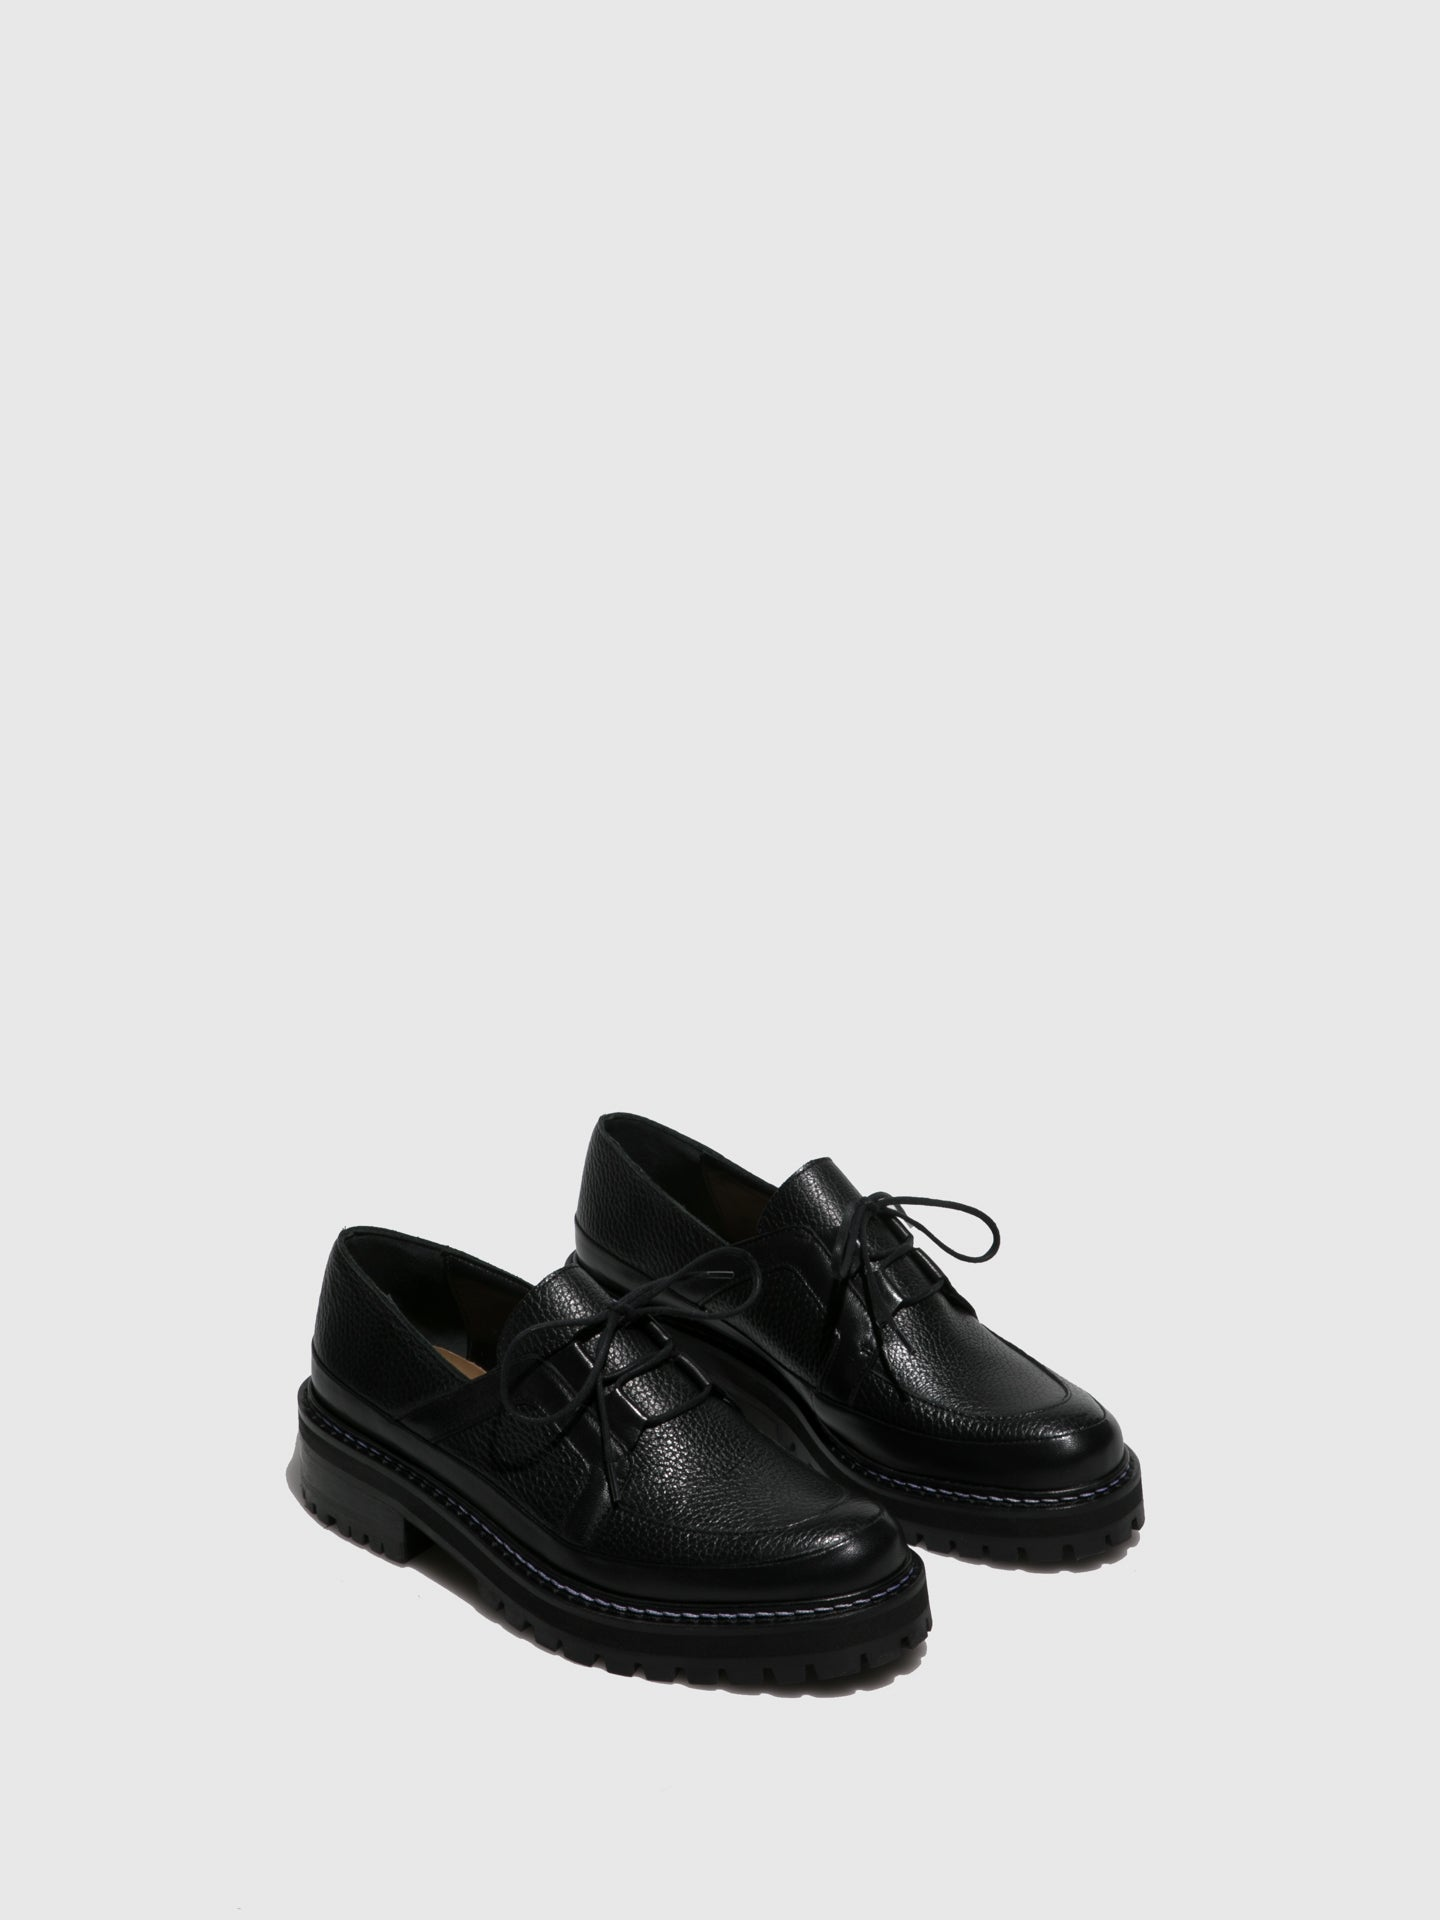 JJ Heitor Black Lace-up Shoes